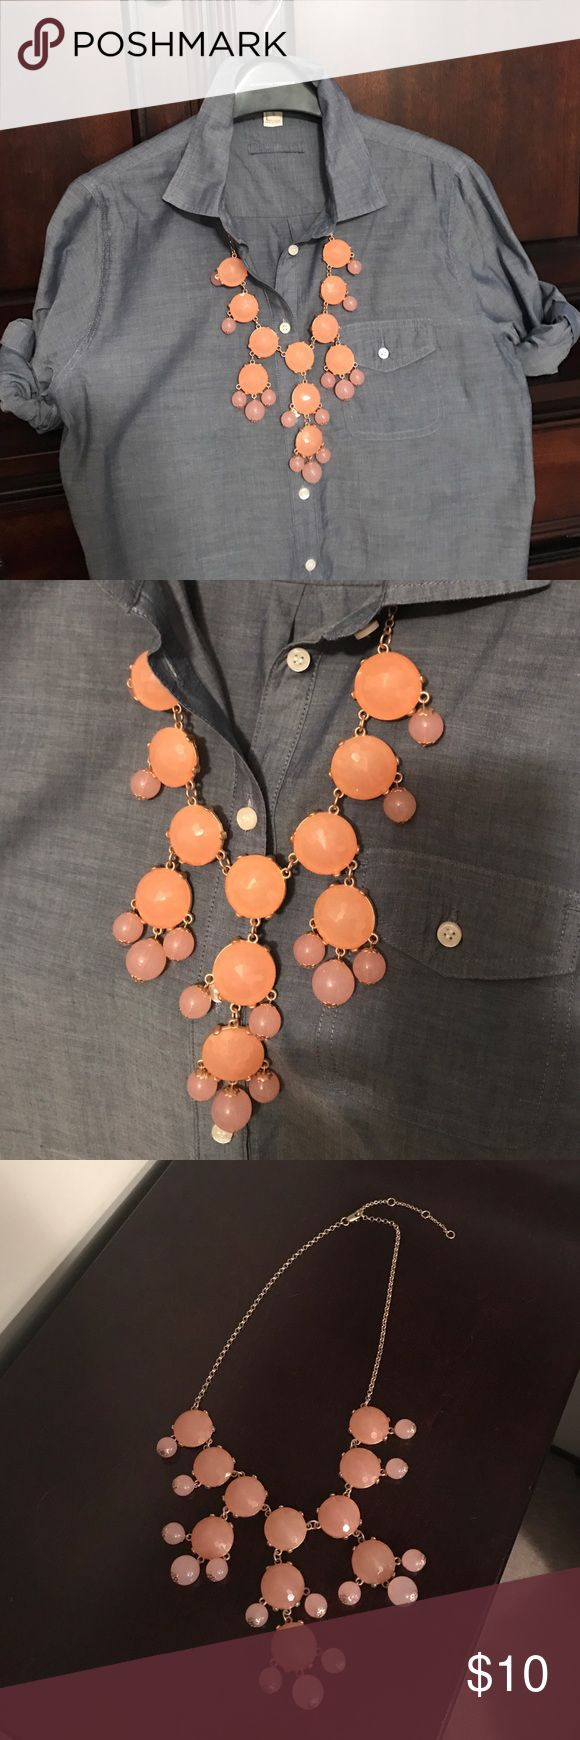 Pink and coral bubble necklace Pink and coral bubble necklace with adjustable gold link chain Jewelry Necklaces